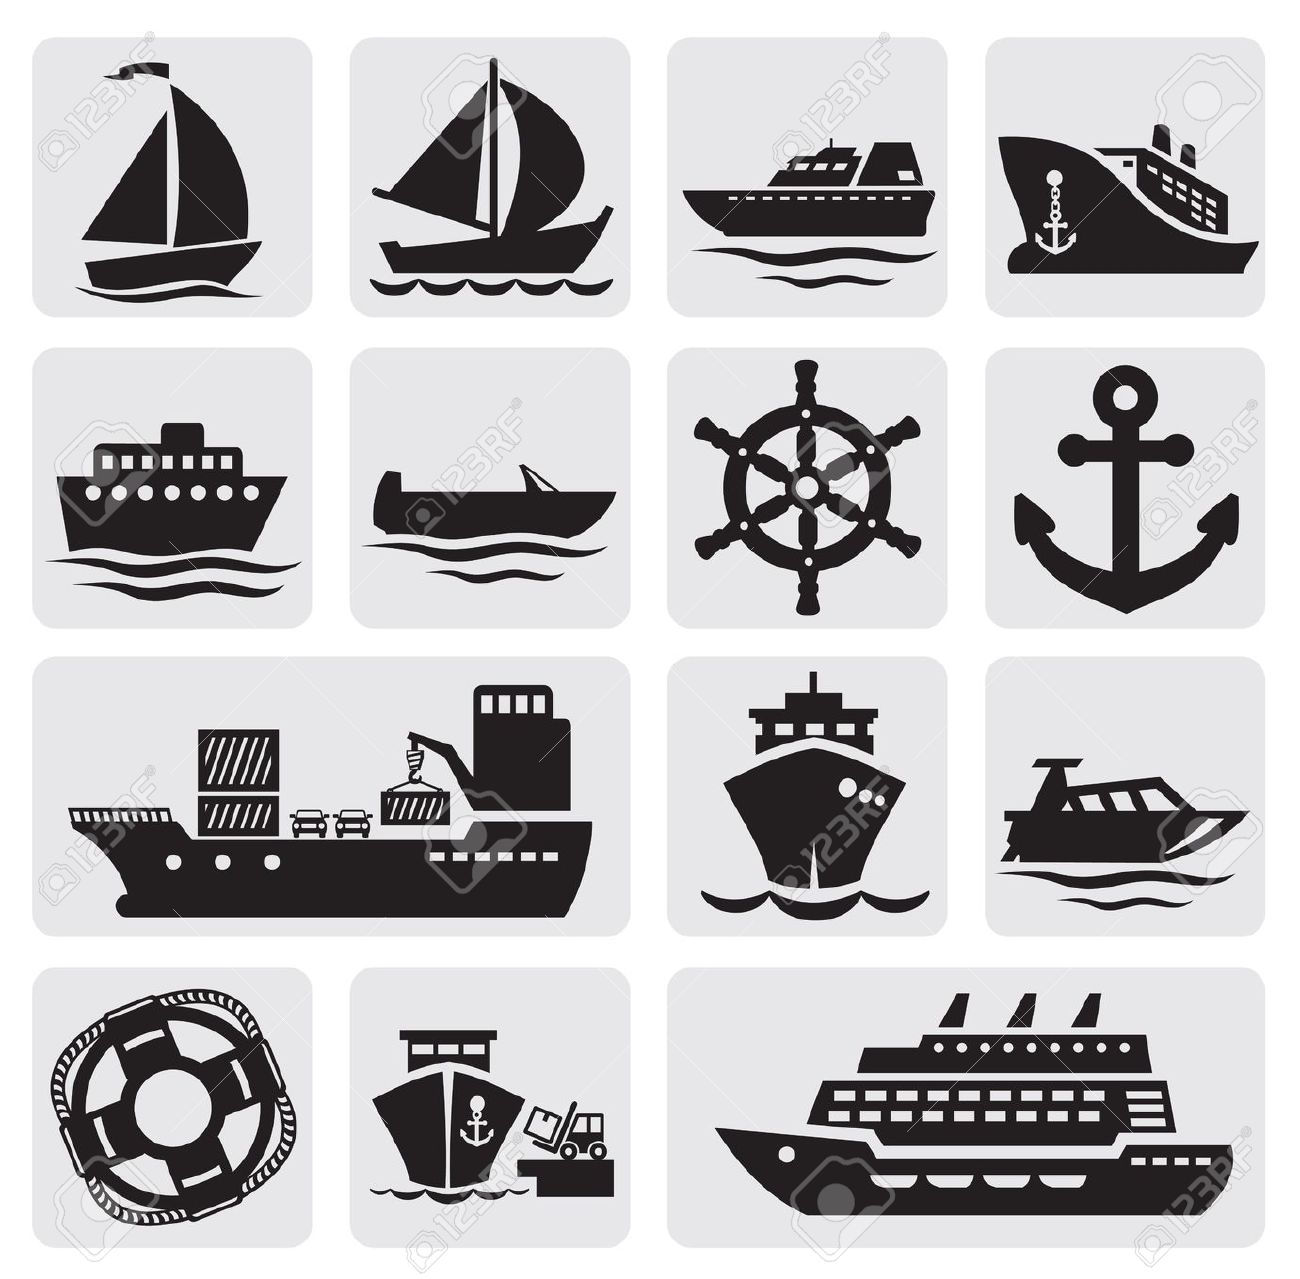 Iiii clipart boat Stock  Free Icons Illustration